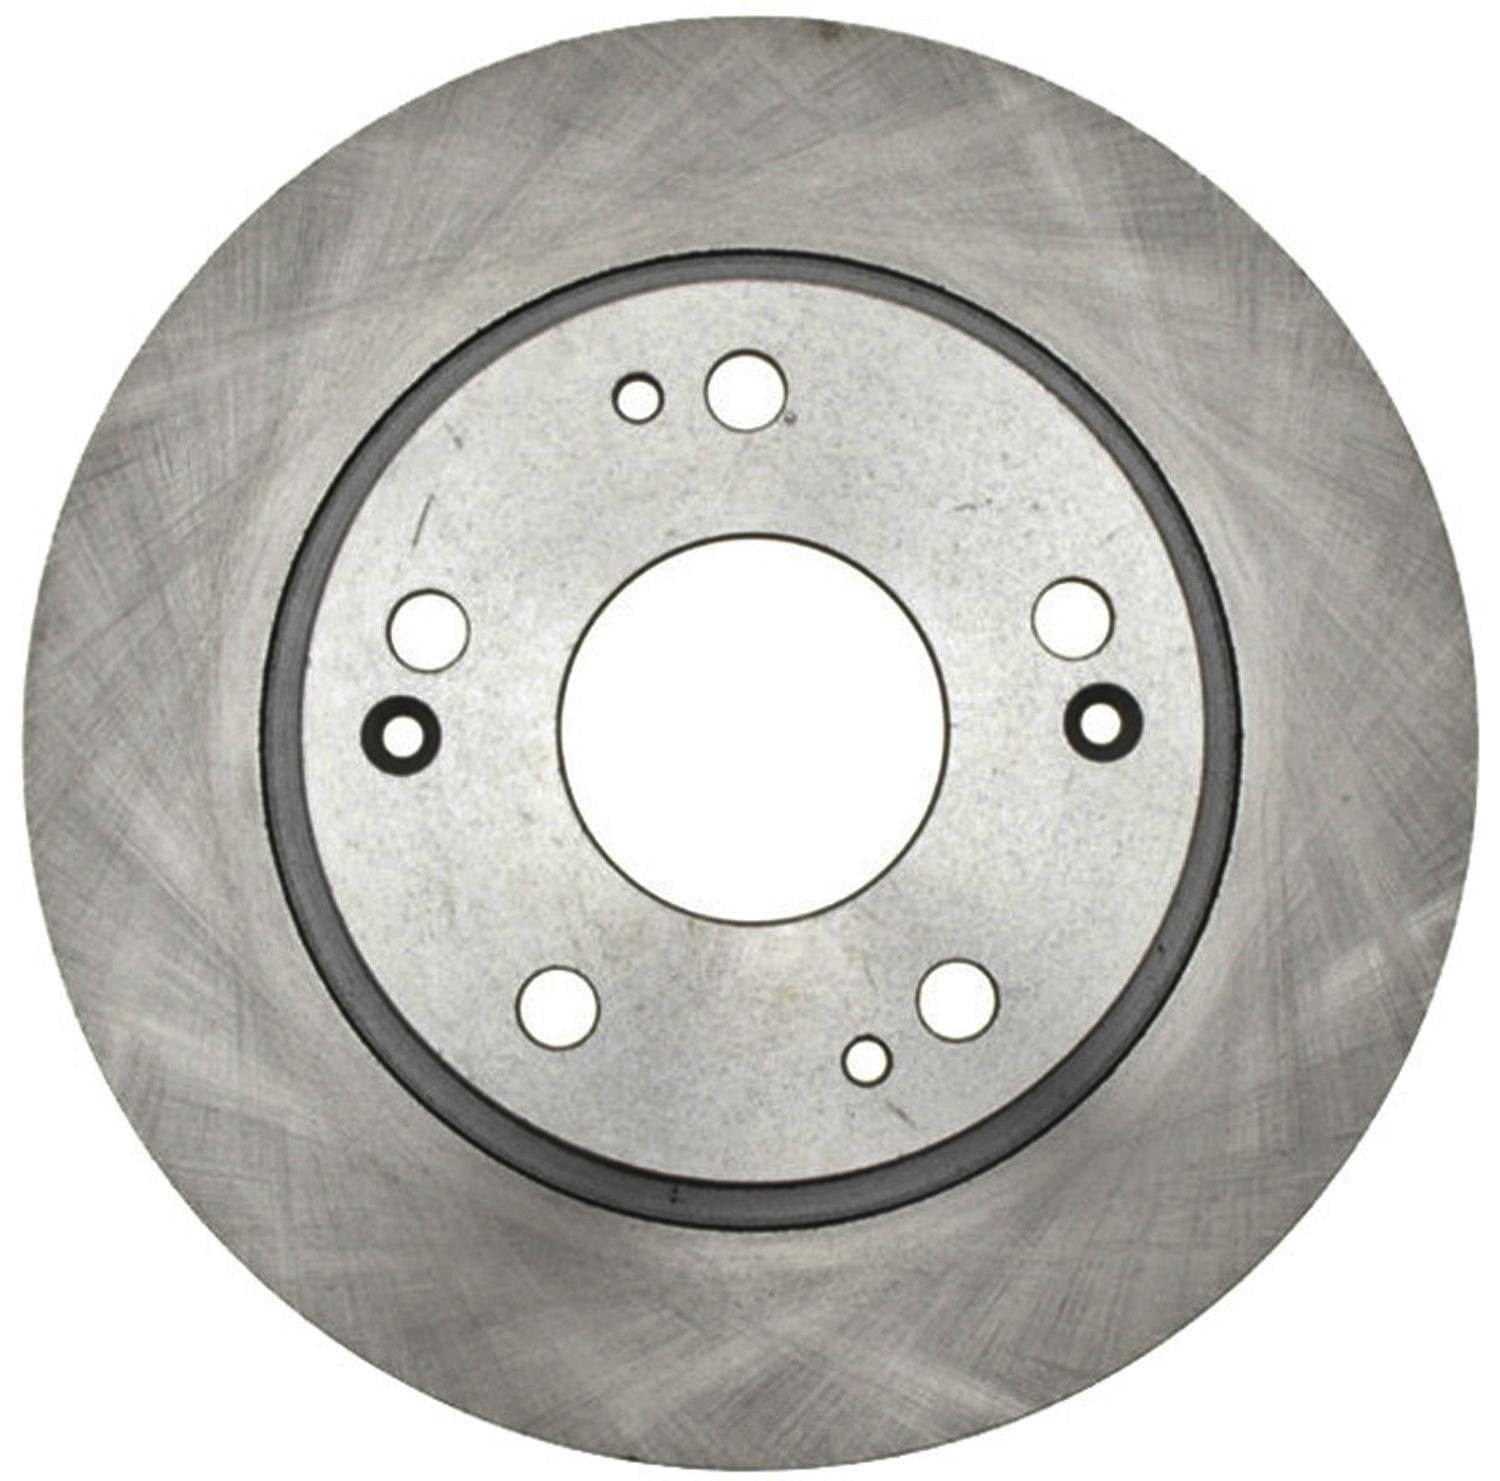 ACDELCO ADVANTAGE - Non-Coated Disc Brake Rotor - DCD 18A1339A